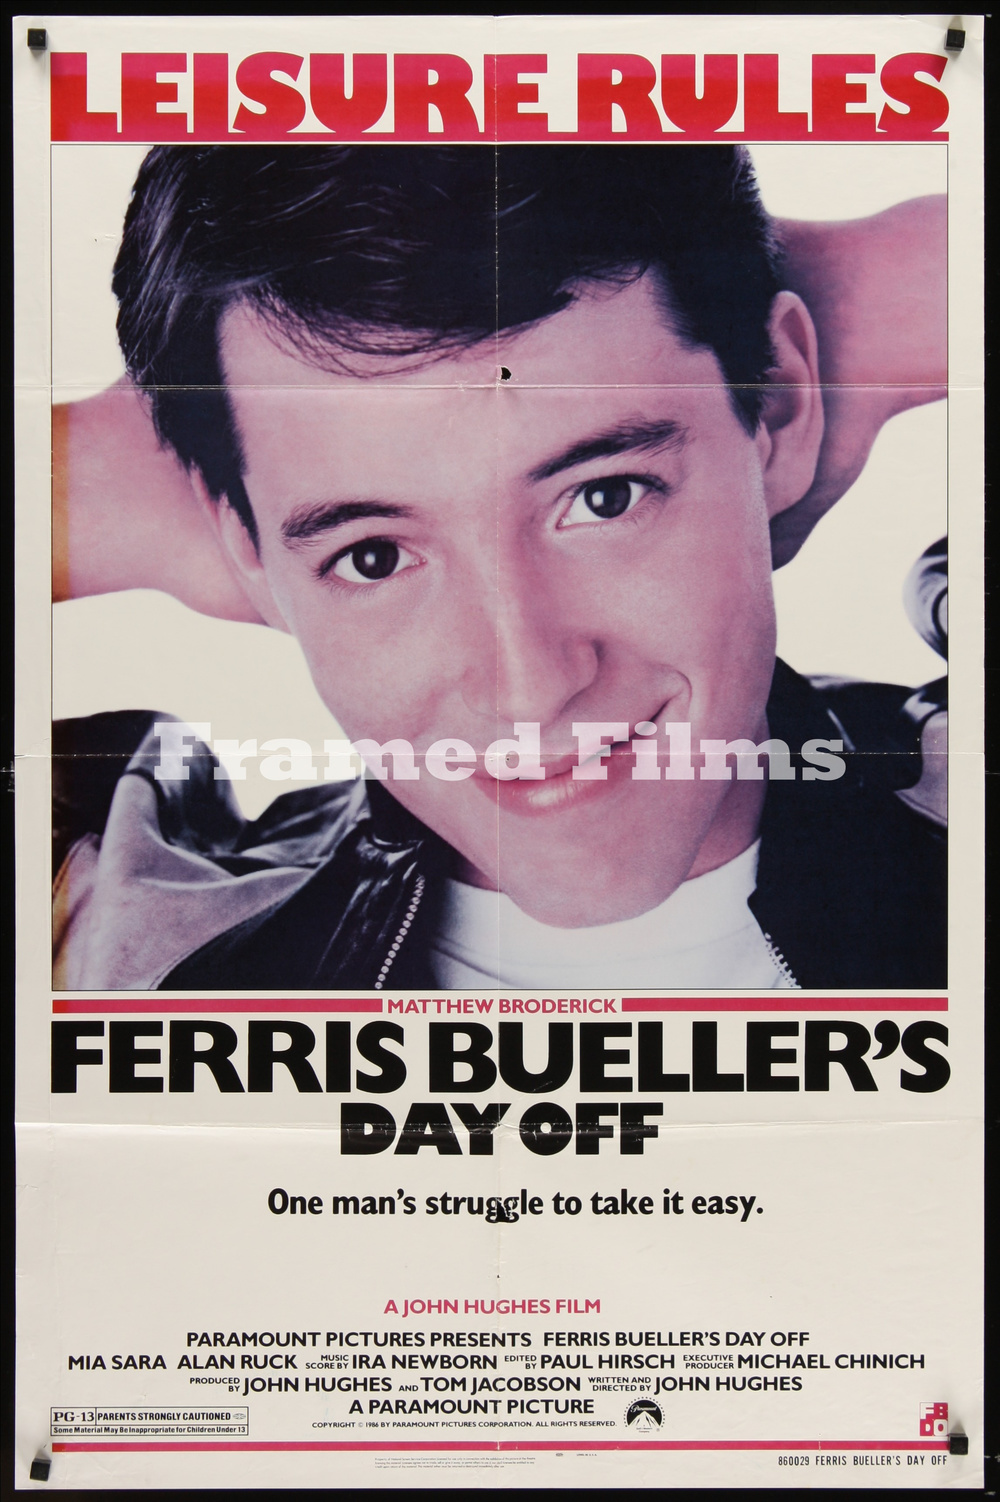 ferris_buellers_day_off_NZ03671_L.jpg